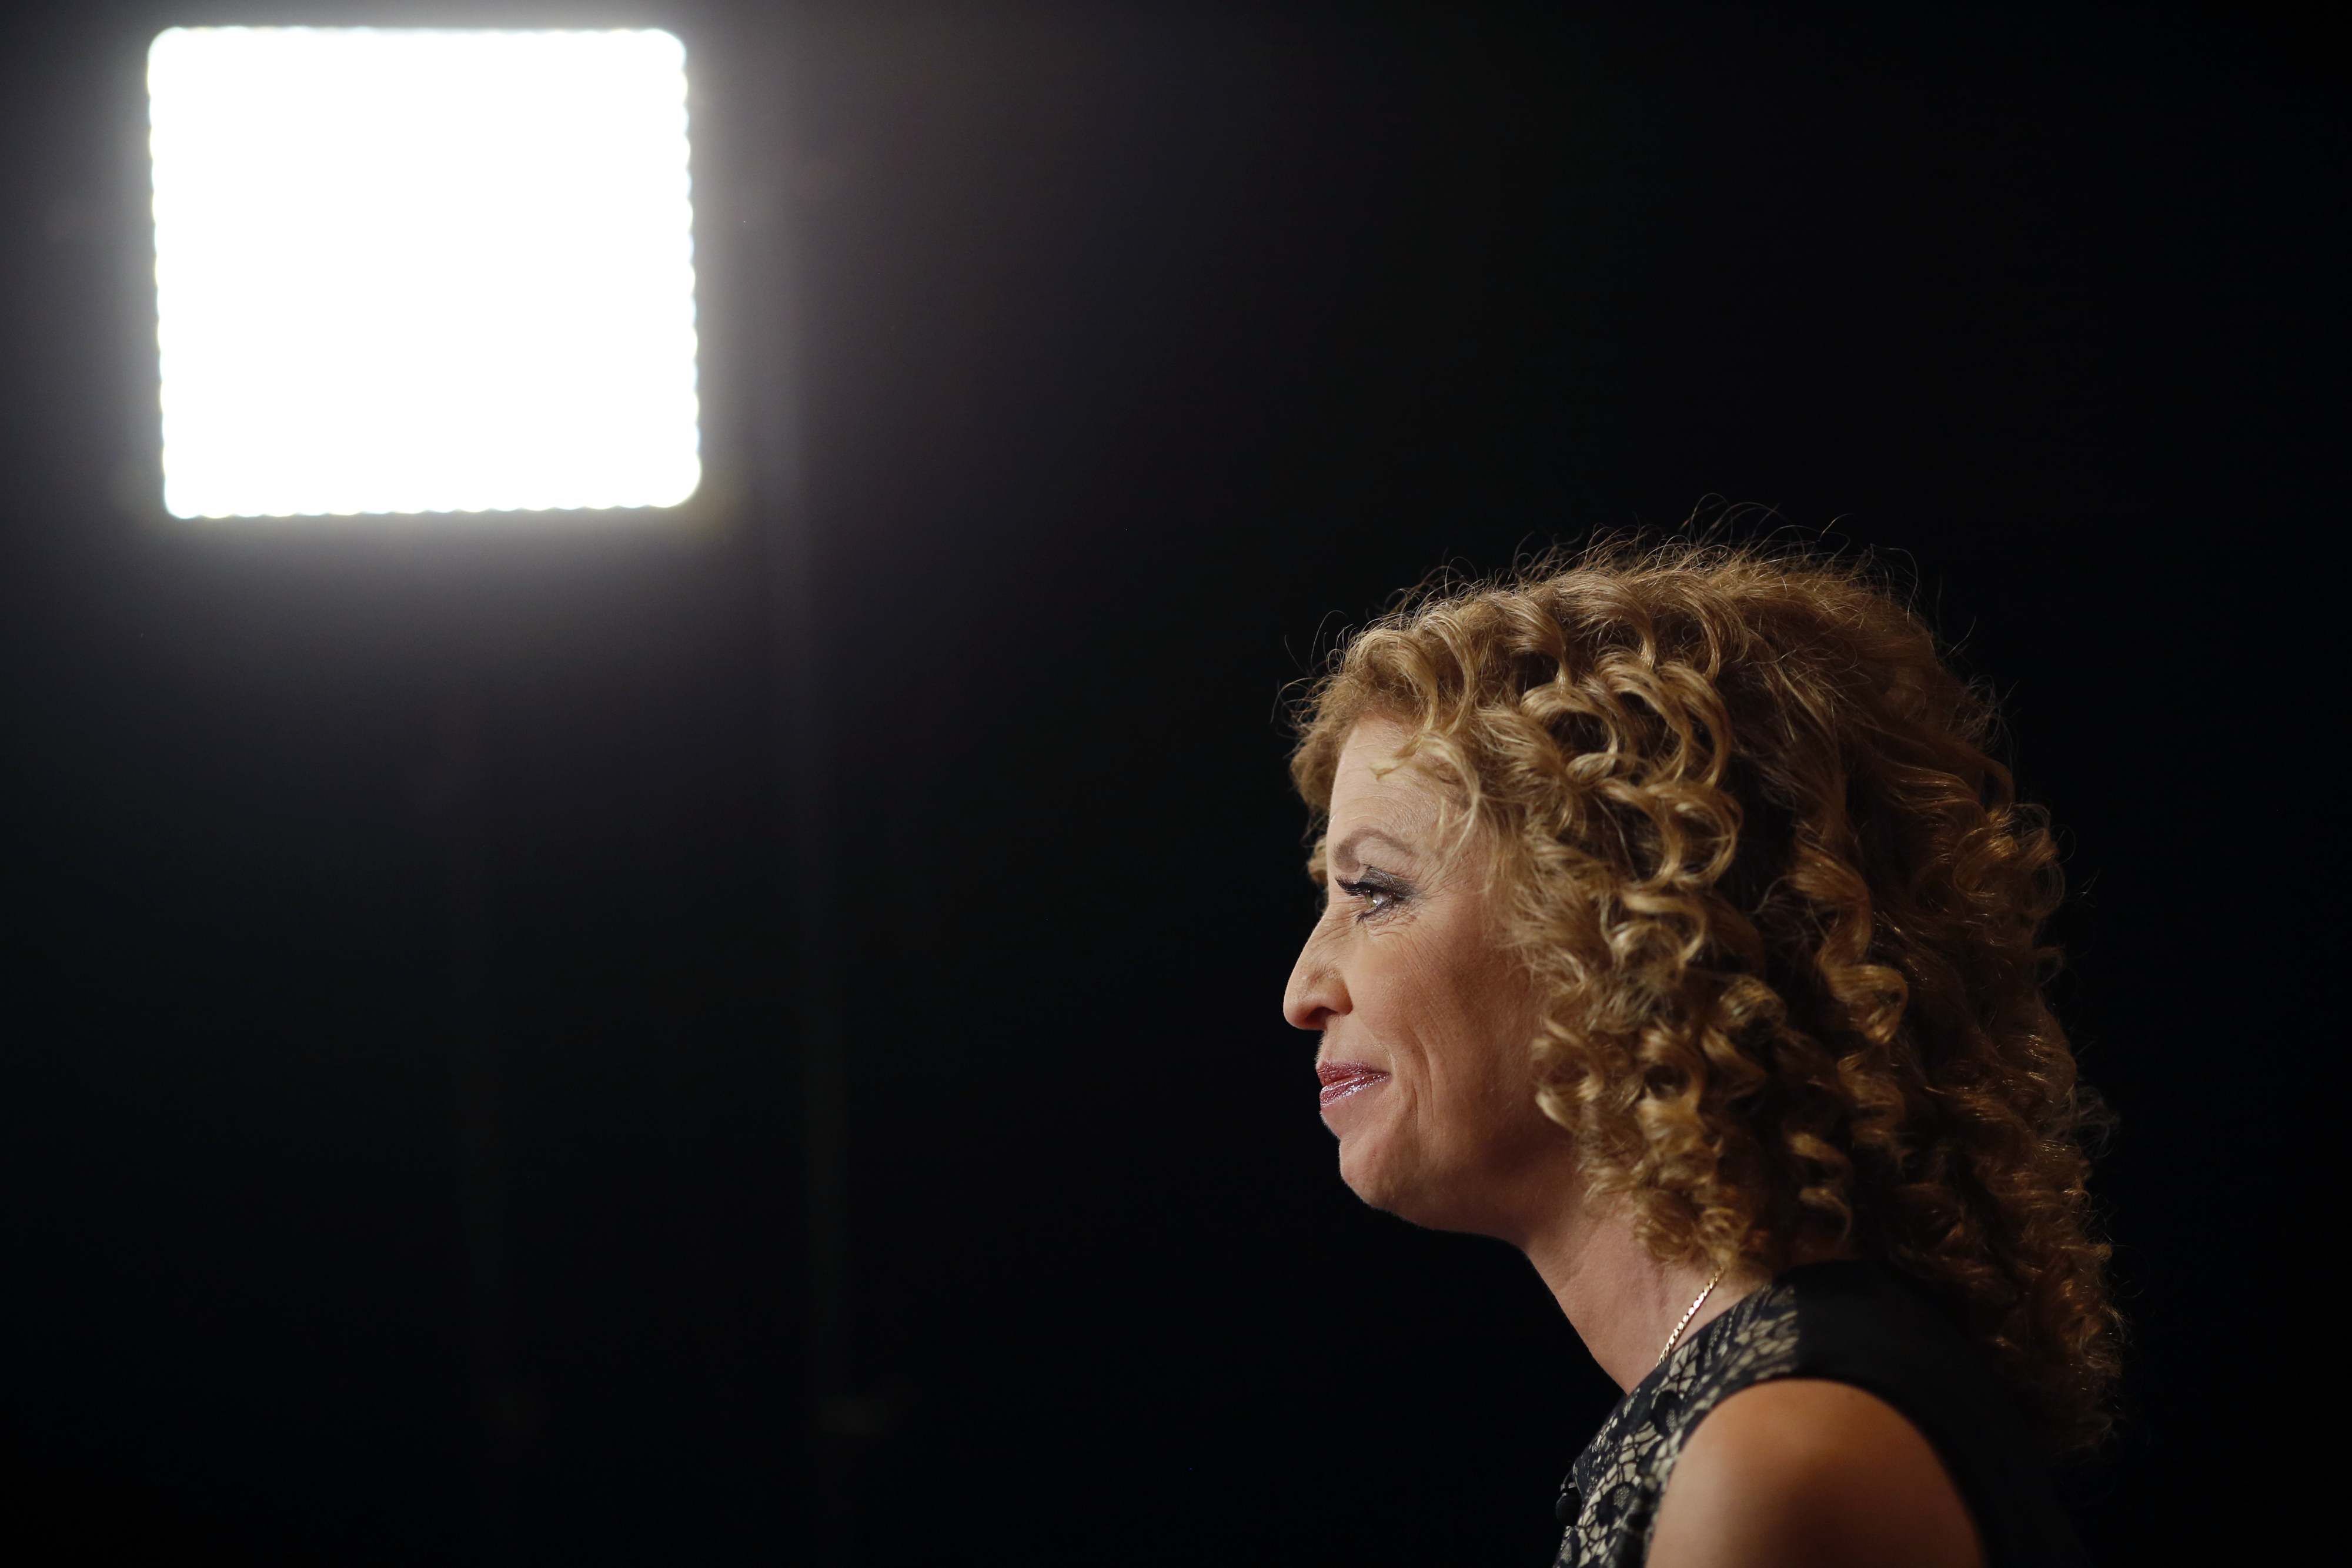 Representative Debbie Wasserman Schultz, Democratic National Committee Chairwoman and a Democrat from Florida, sits for an interview before the first Democratic presidential debate hosted by CNN in Las Vegas, Nevada, U.S., on Tuesday, Oct. 13, 2015.